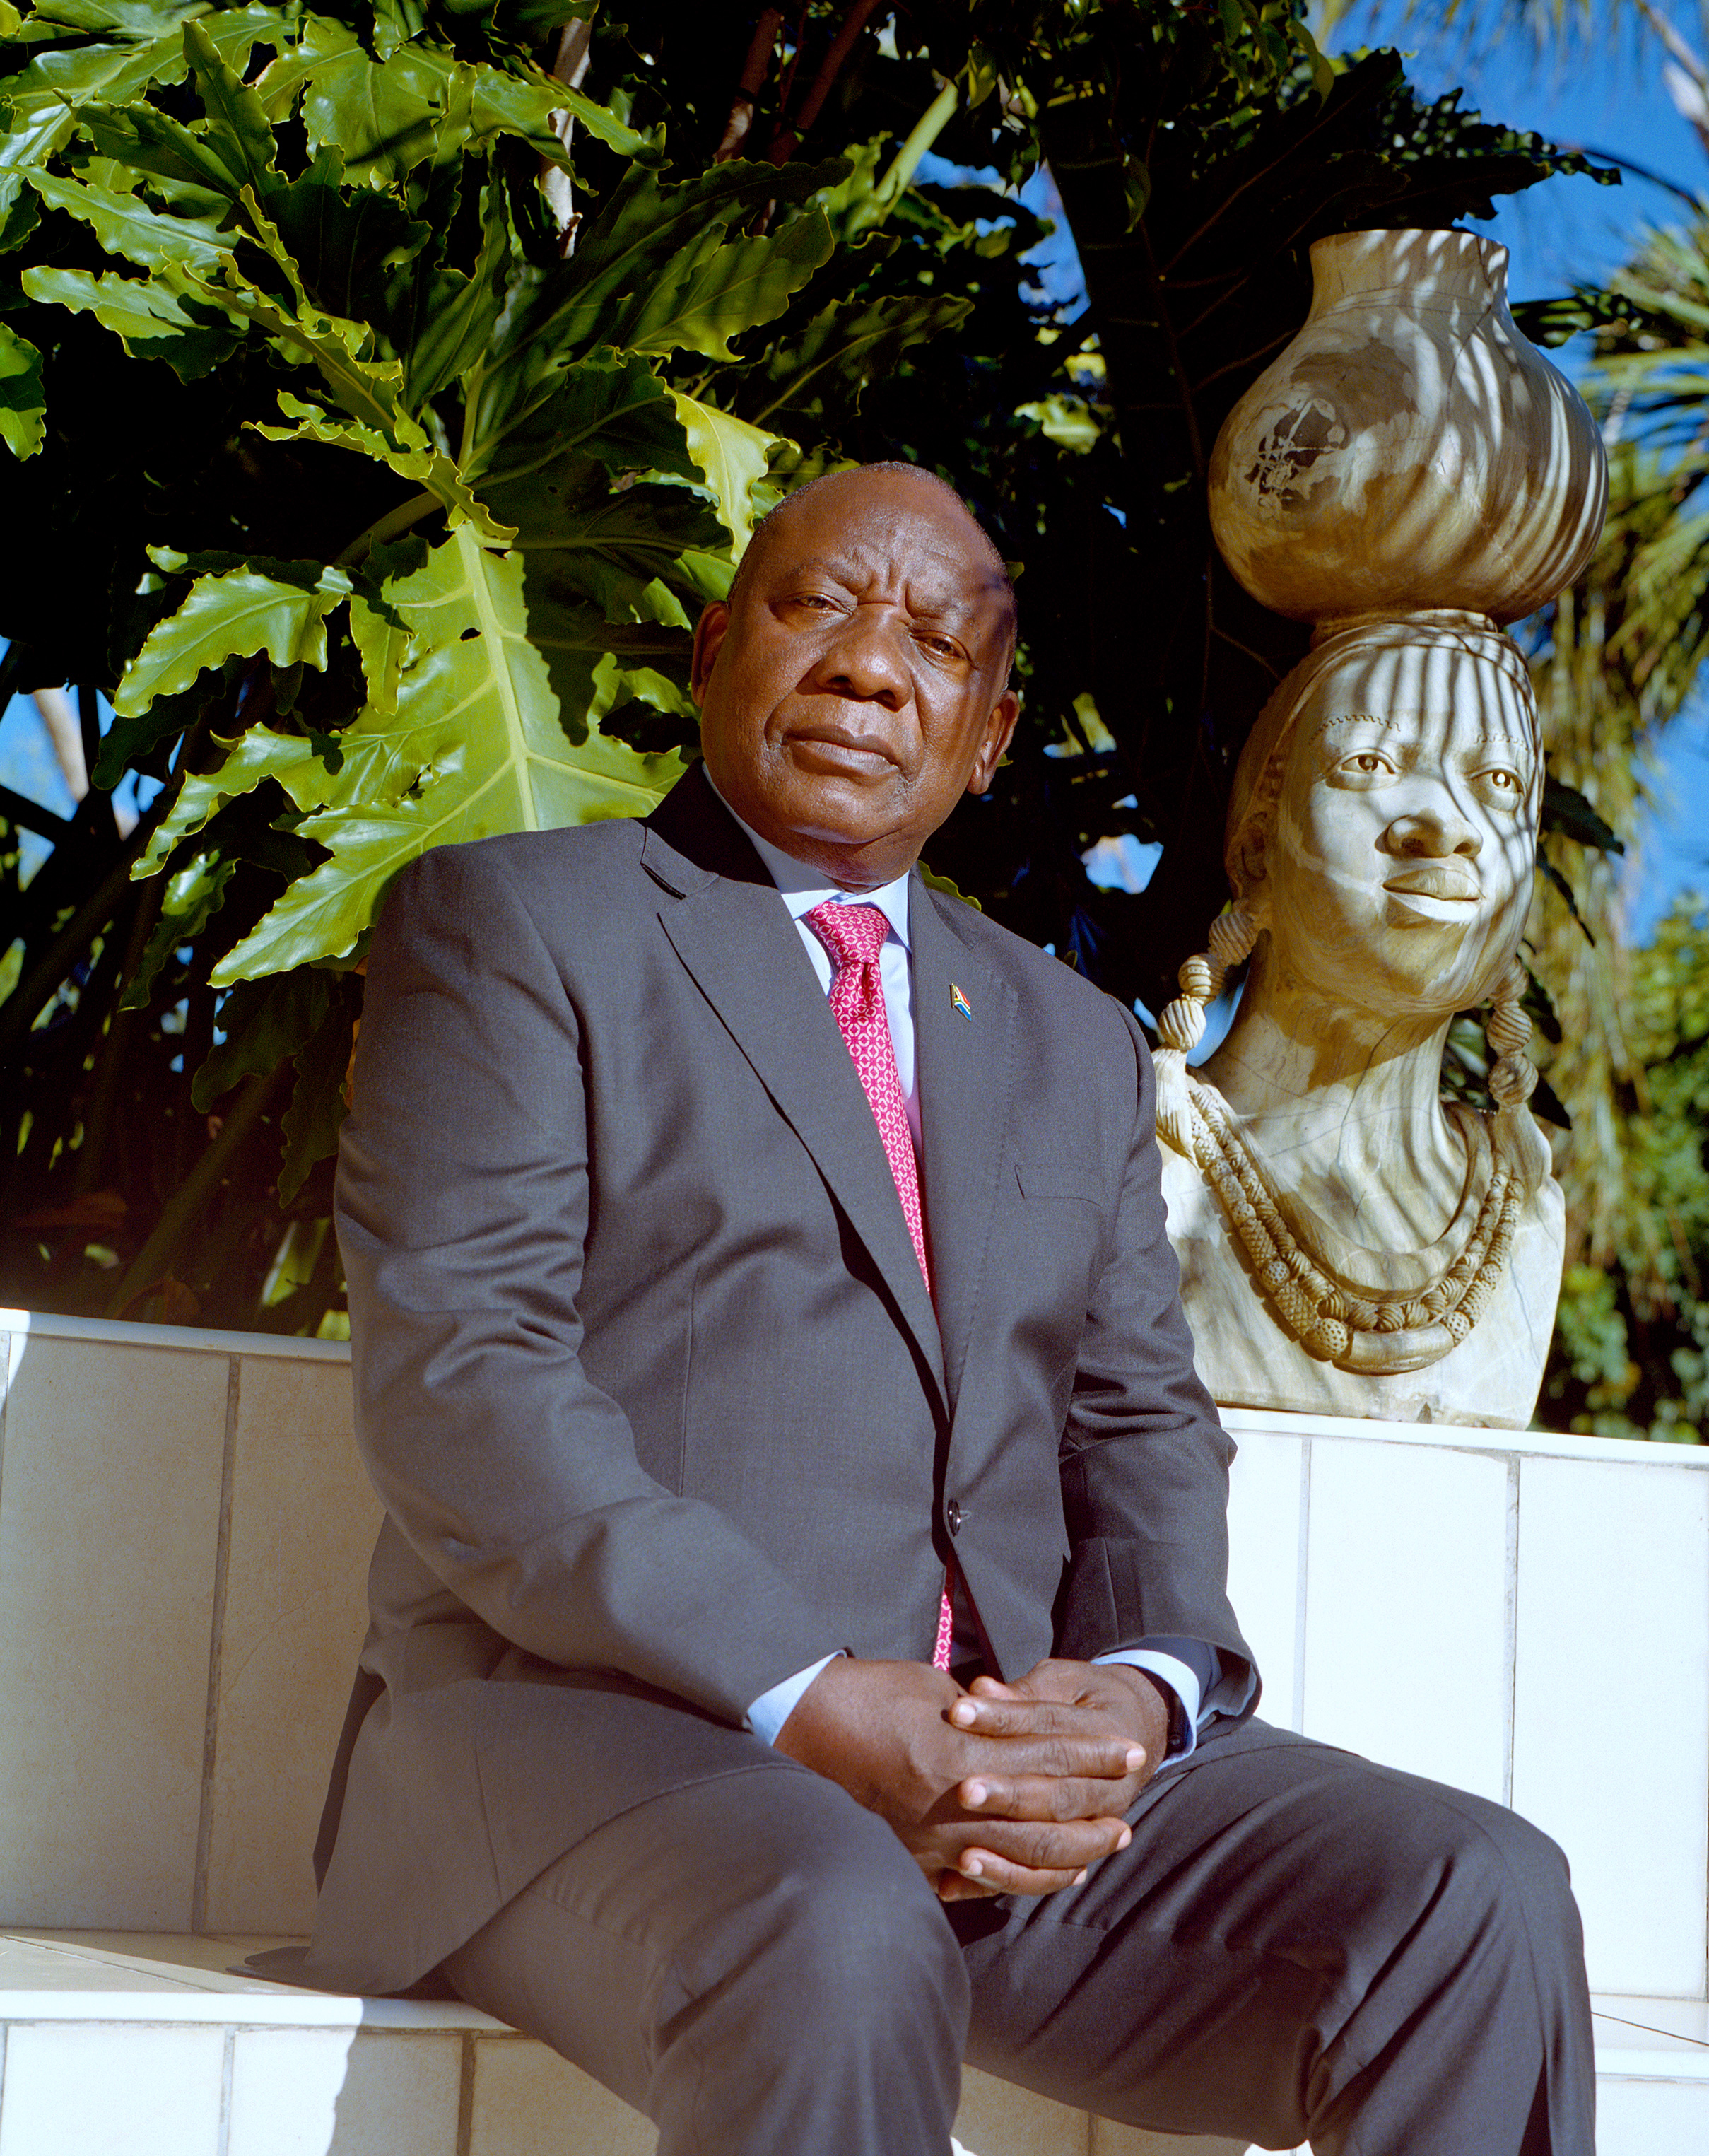 President of South Africa Cyril Ramaphosa at his residence on April 15, 2019.